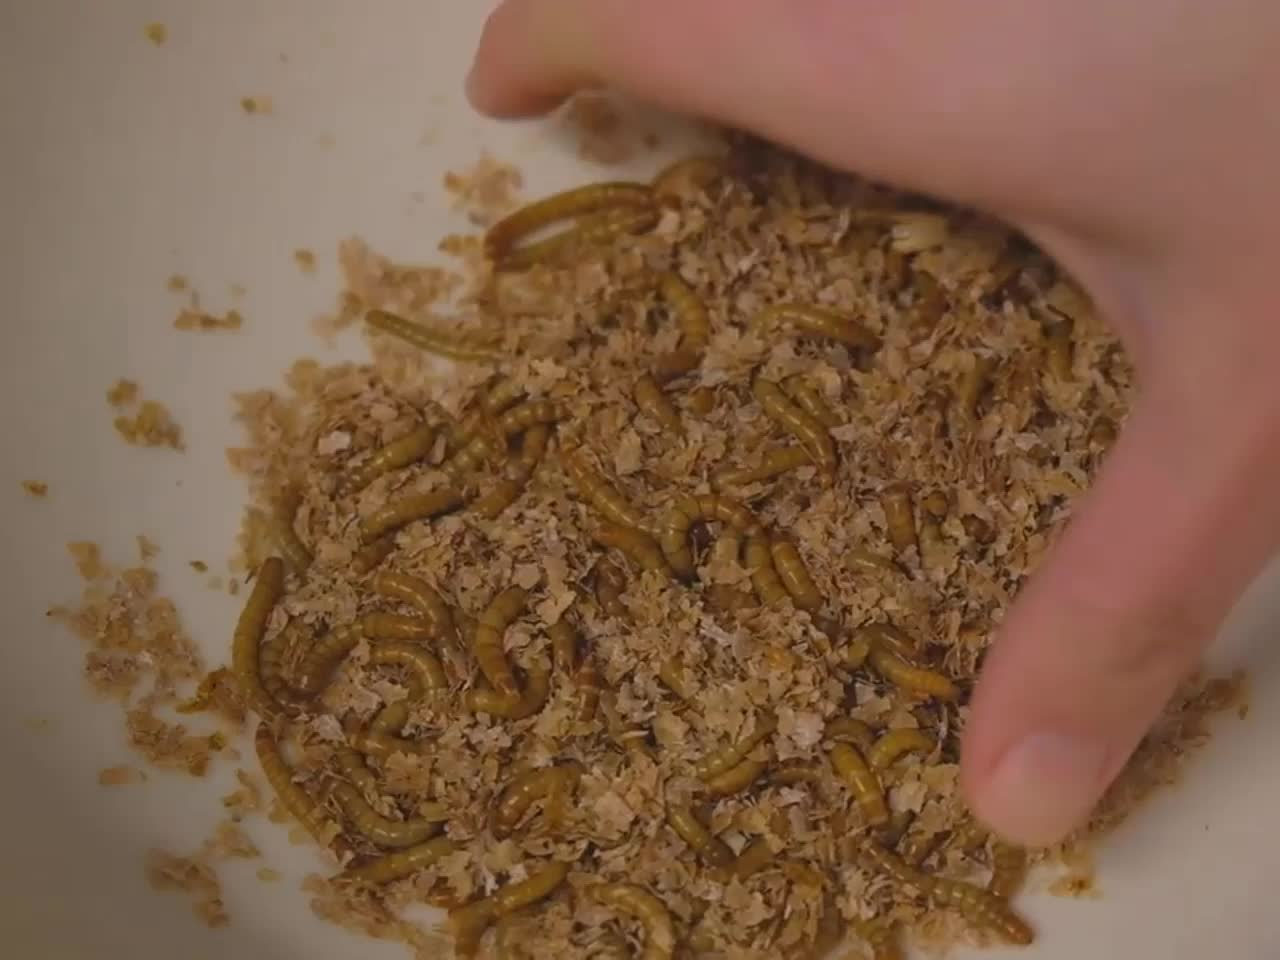 Canned mealworms for Pet Birds Food Amphibians Aquatic Feeder and Fishing Bait Dried Mealworms